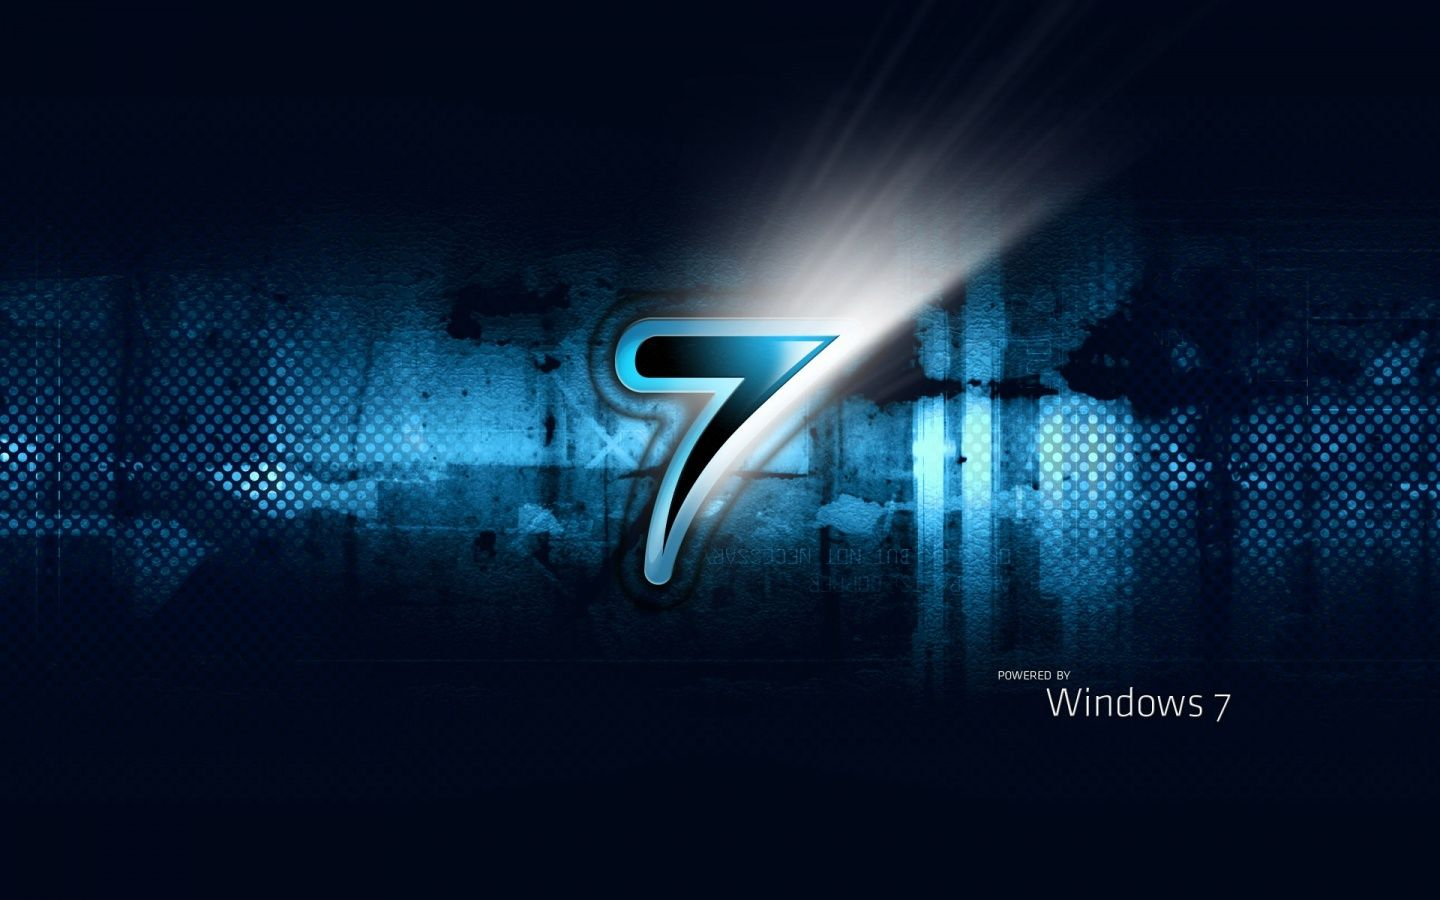 Hd wallpaper windows 7 - Awesome Plavi Windows 7 Wallpaper Hd Pozadine